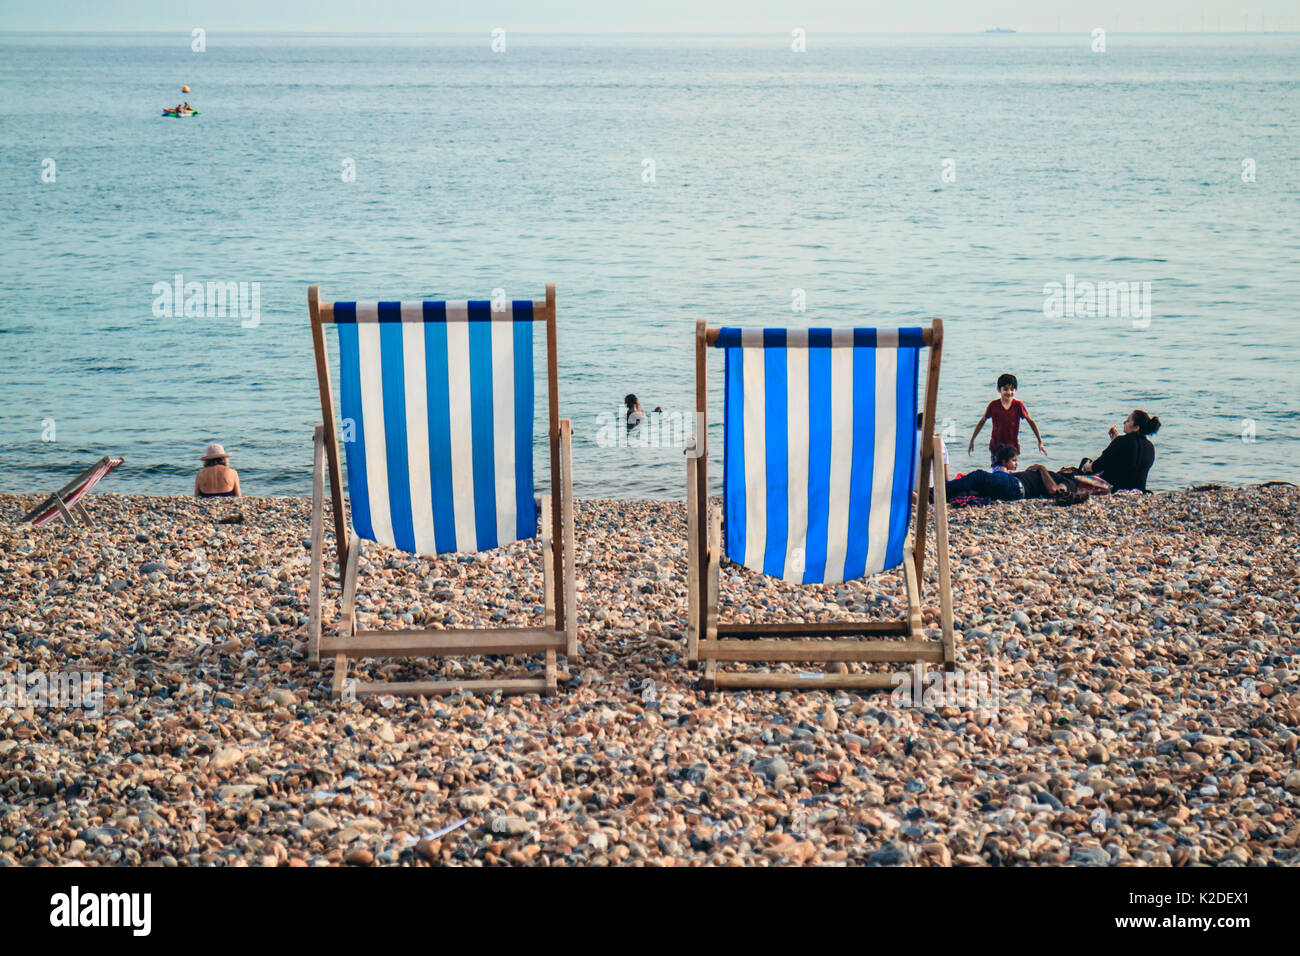 People Outdoor Swimming Uk Stock Photos People Outdoor Swimming Uk Stock Images Alamy